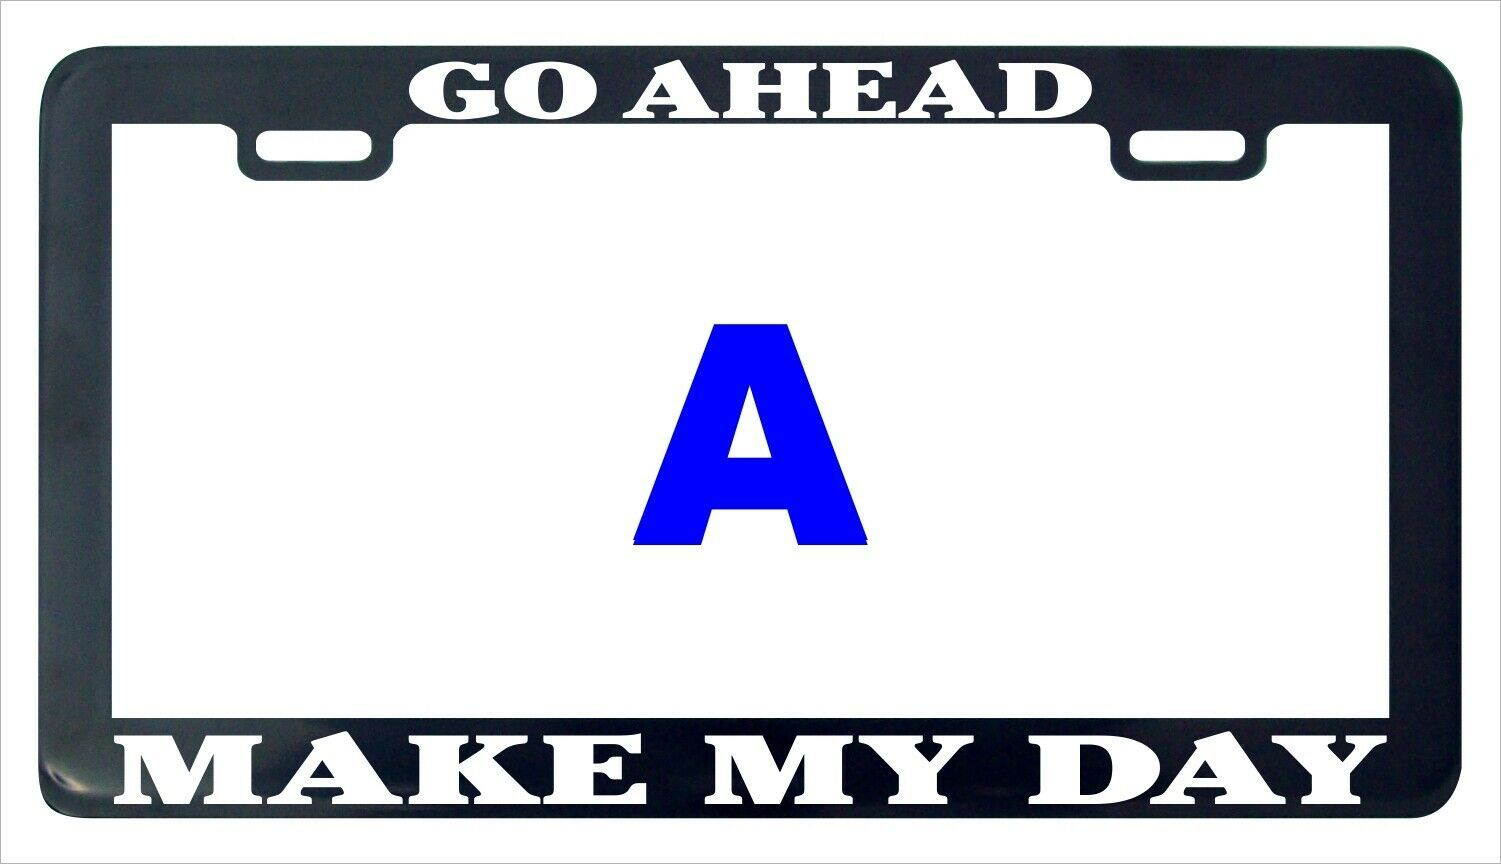 Primary image for Go ahead make my day funny humor license plate frame holder